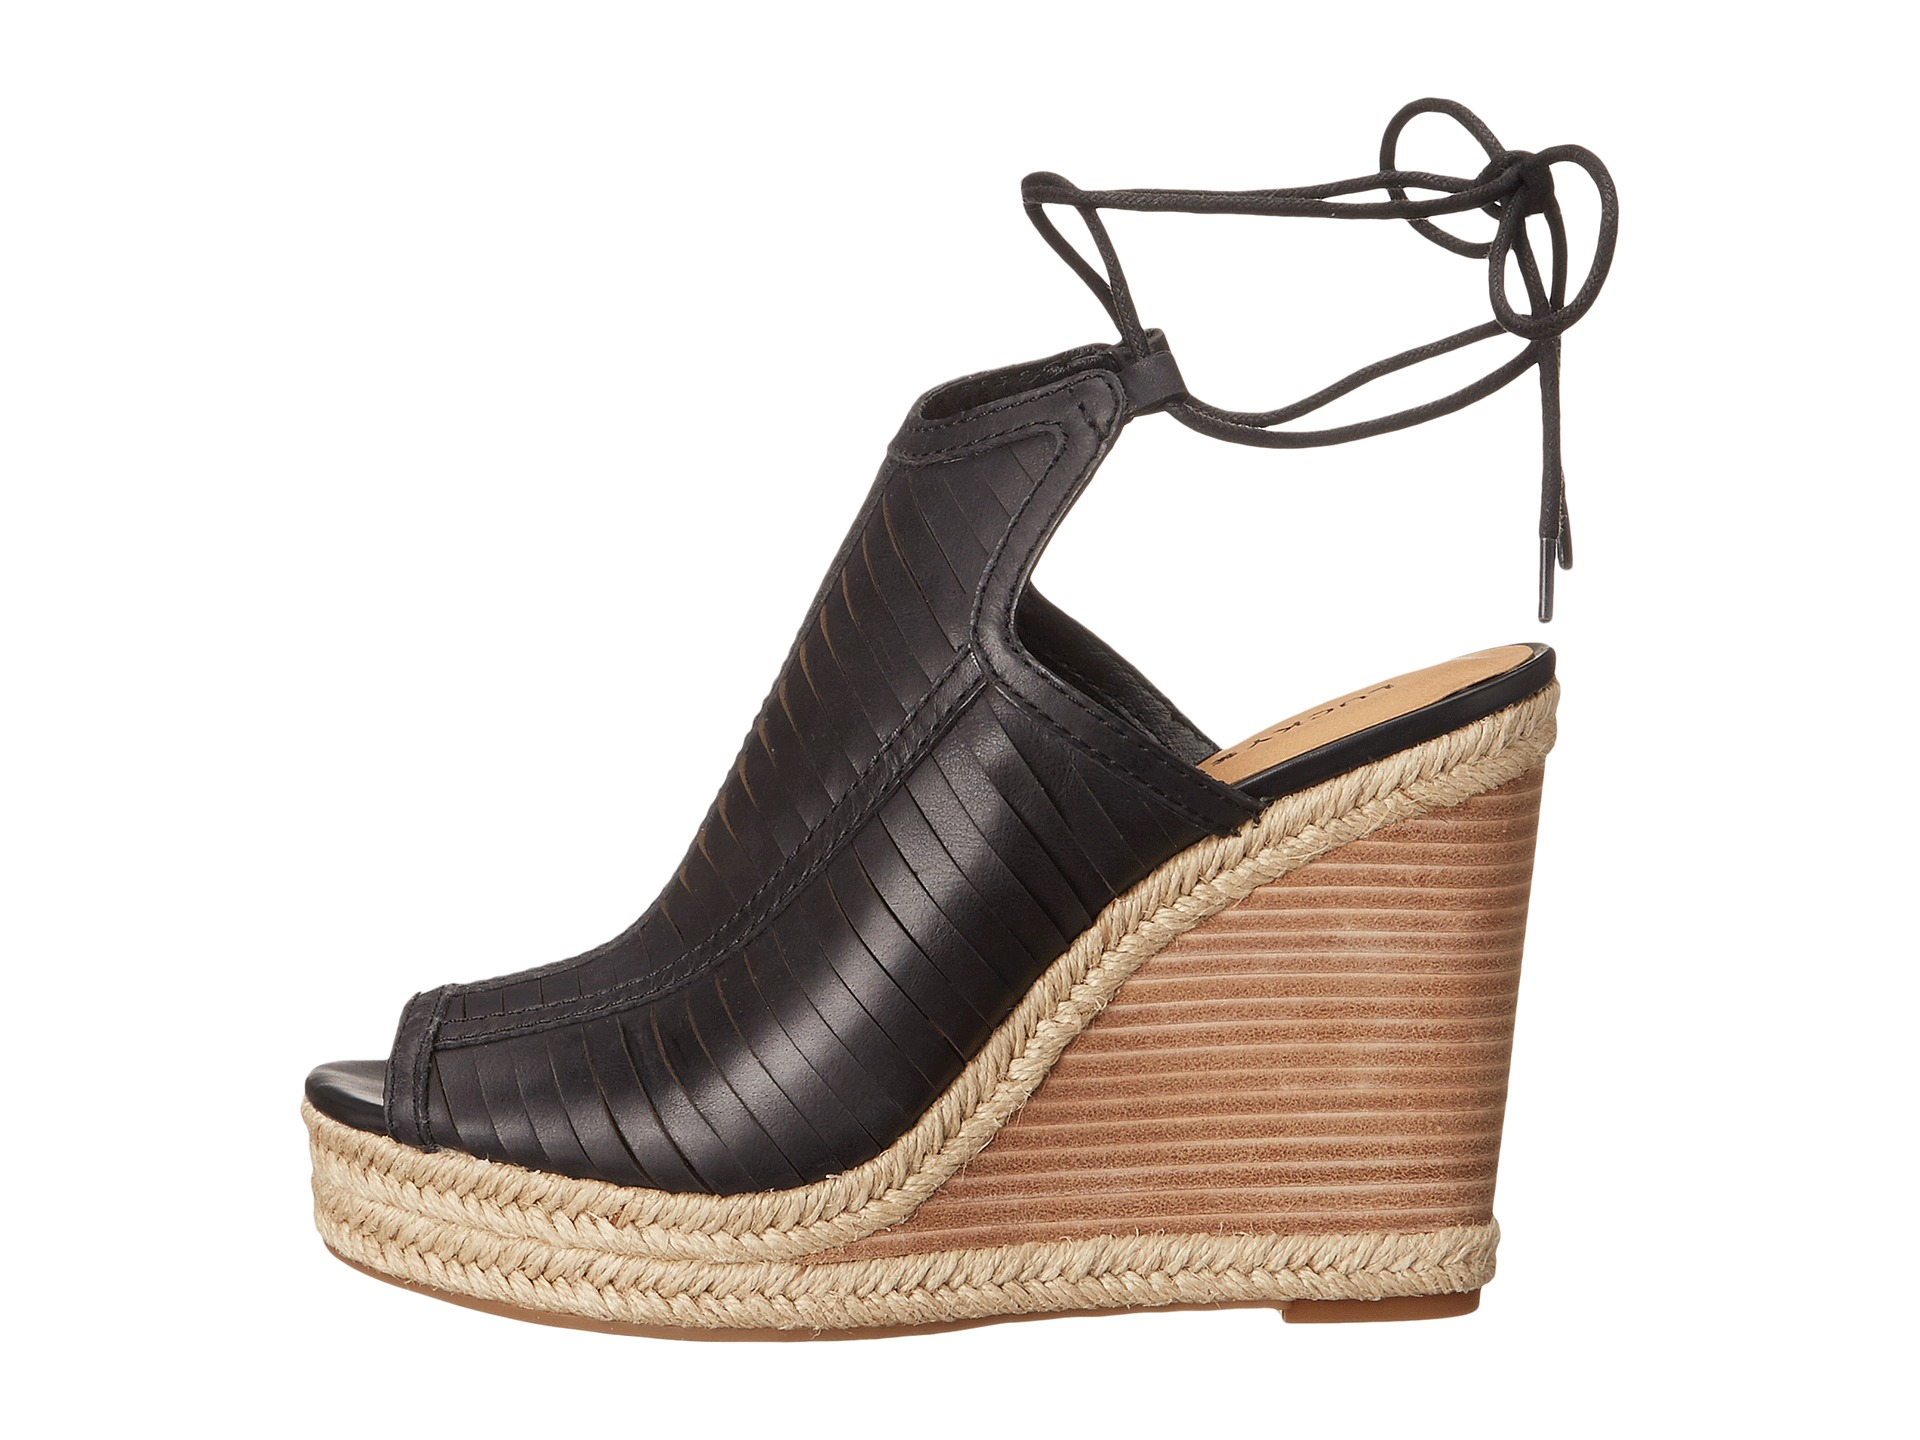 Lucky Brand Shoes Emilia